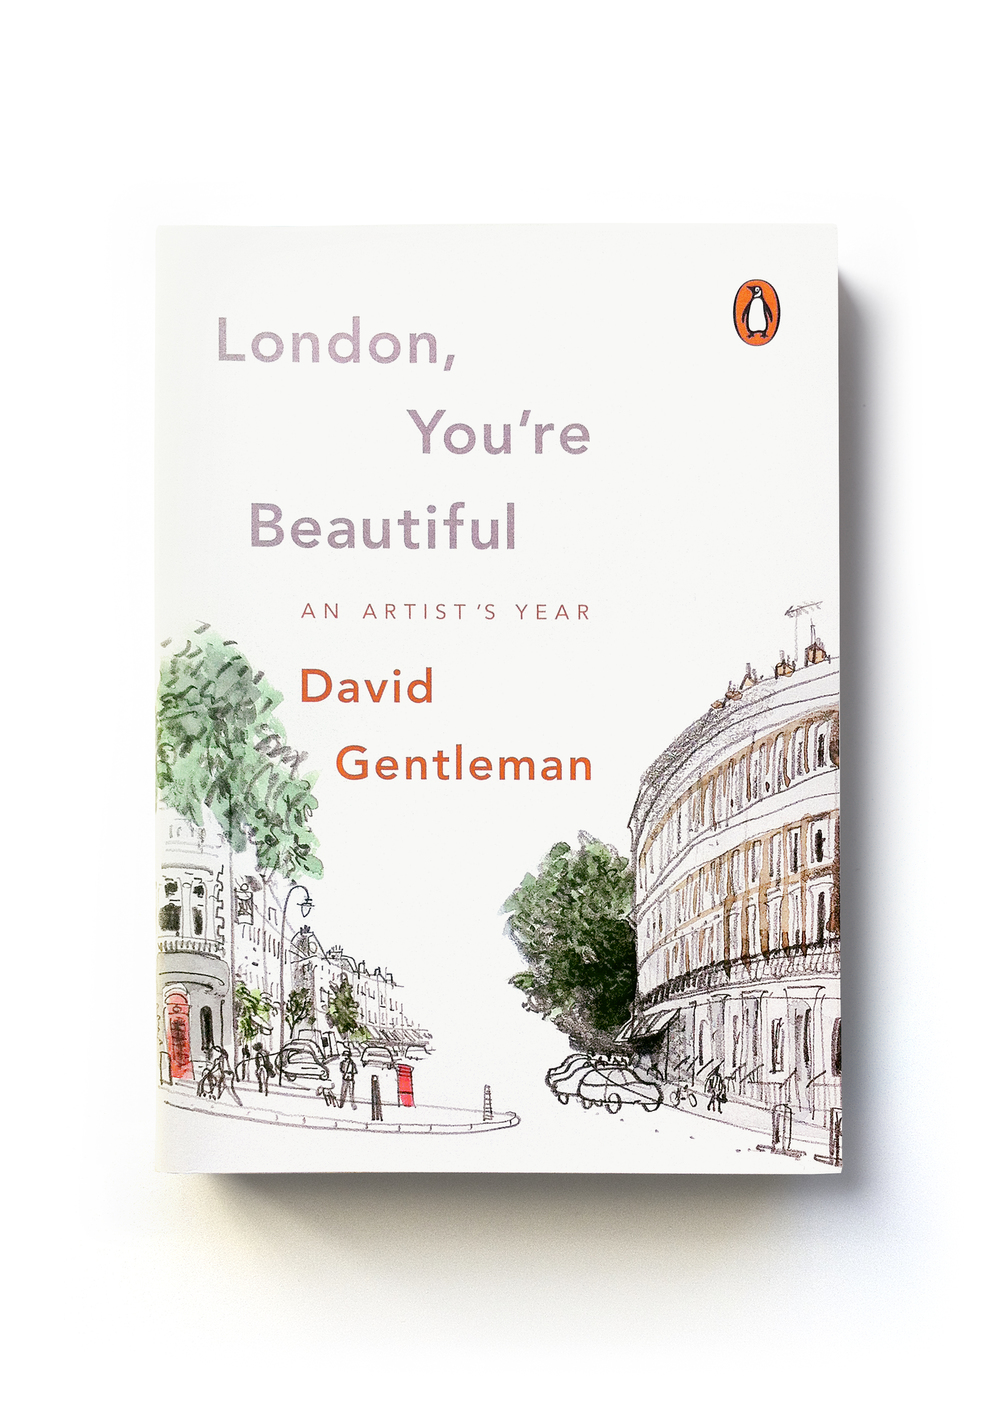 London, You're Beautiful by David Gentleman - Art & words: David Gentleman Art direction: Jim Stoddart